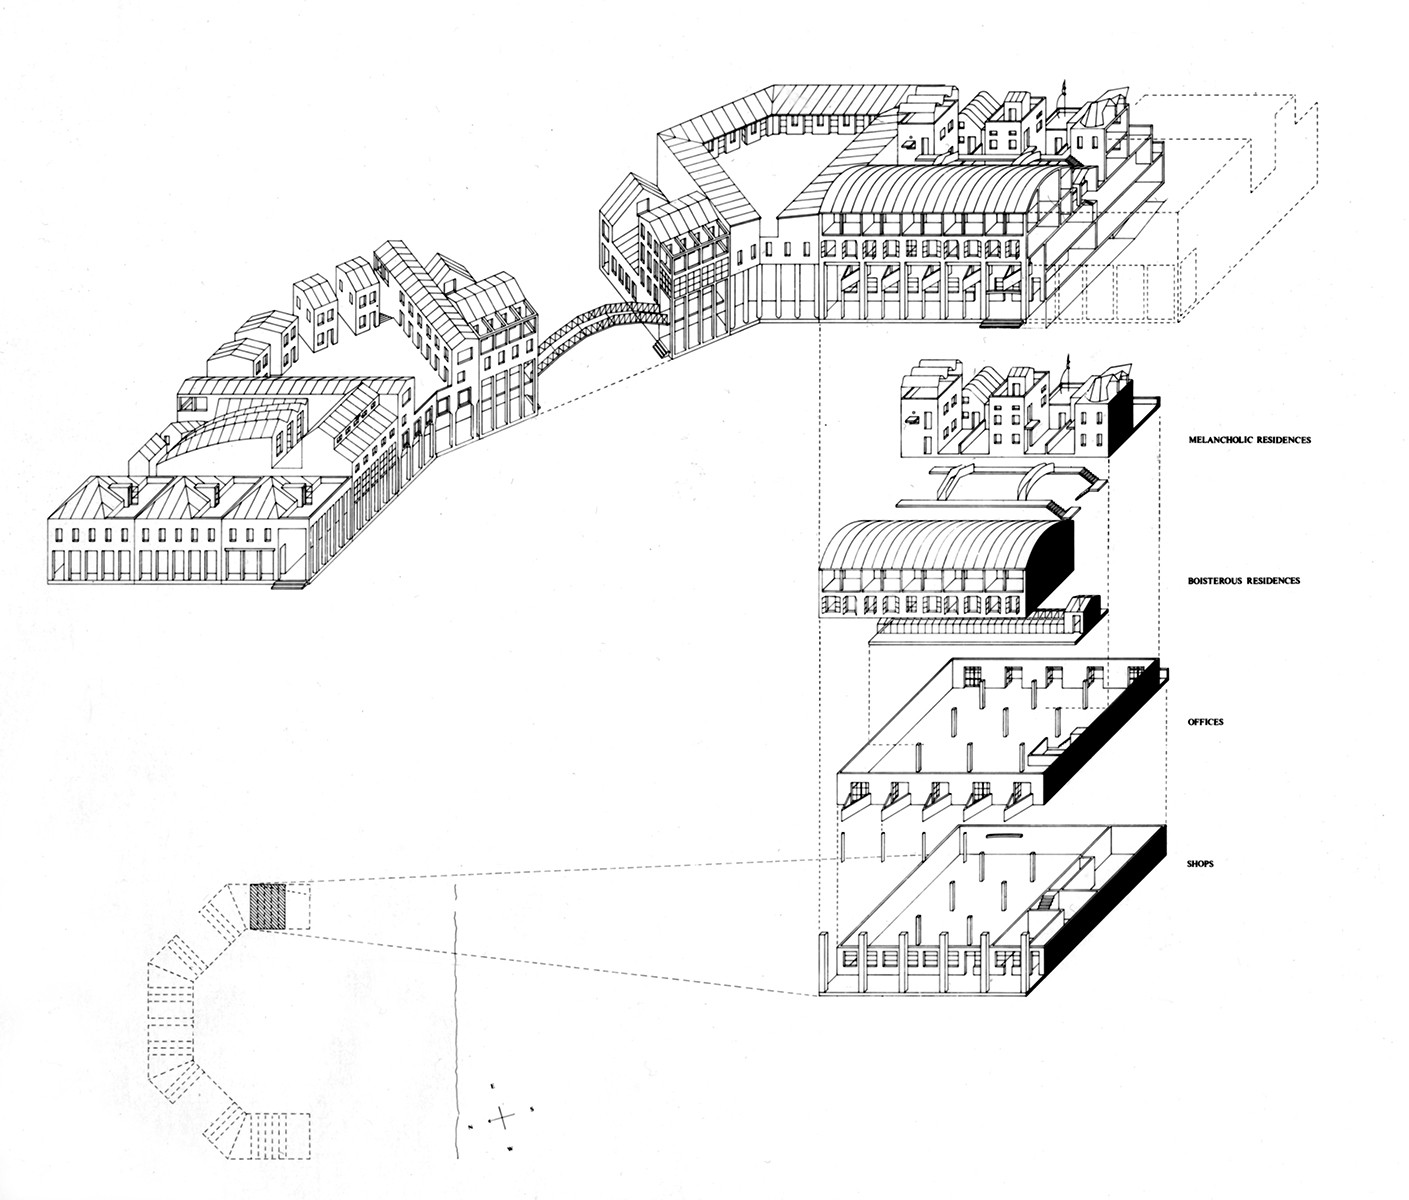 https://s3.us-east-2.amazonaws.com/steven-holl/uploads/projects/project-images/StevenHollArchitects_Hybrid_axo2_WCV.jpg